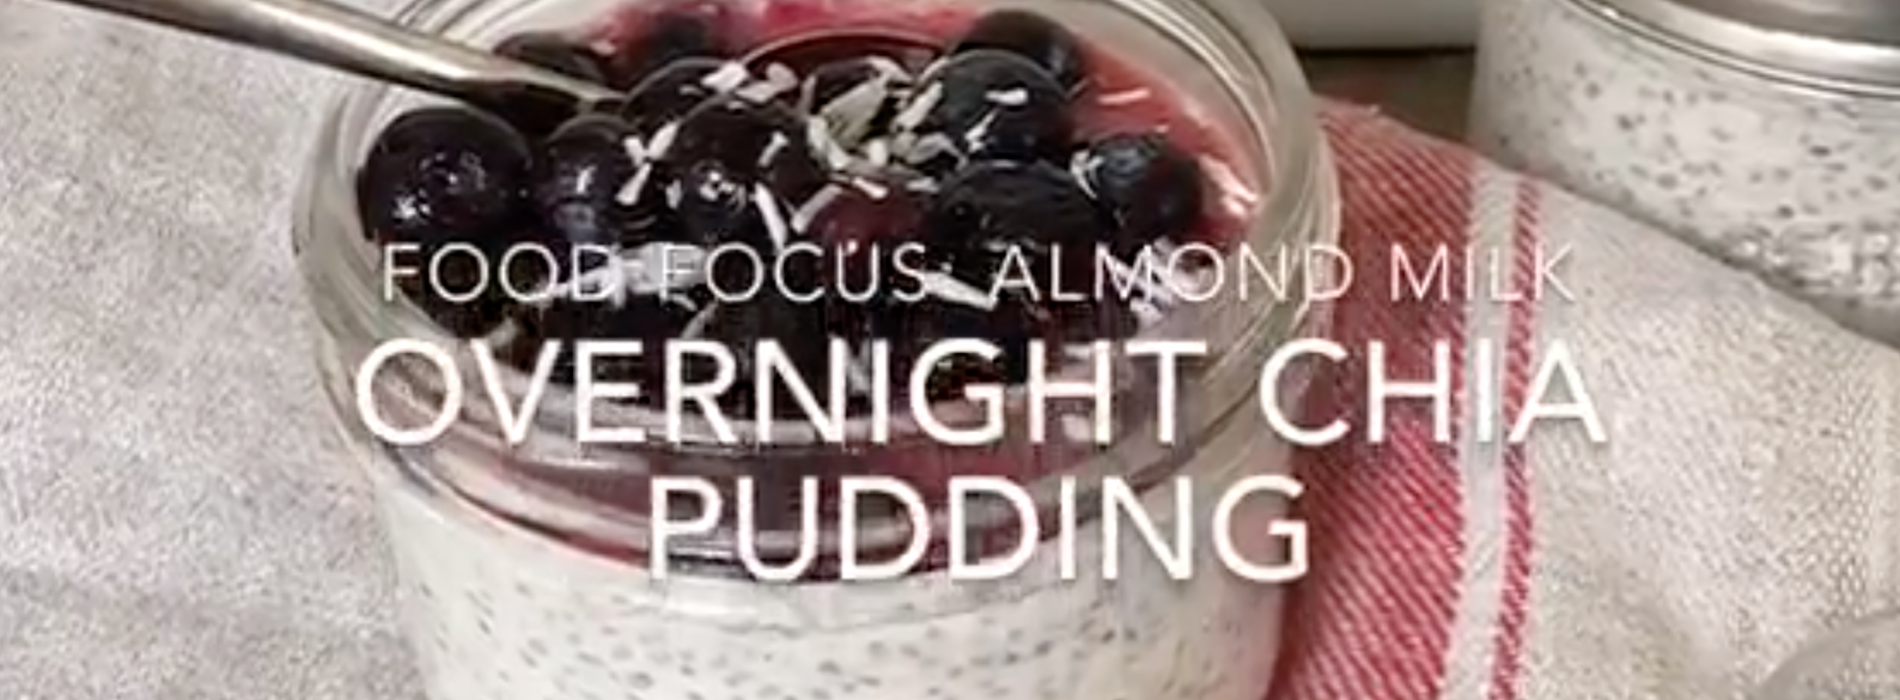 Overnight Chia Pudding Video